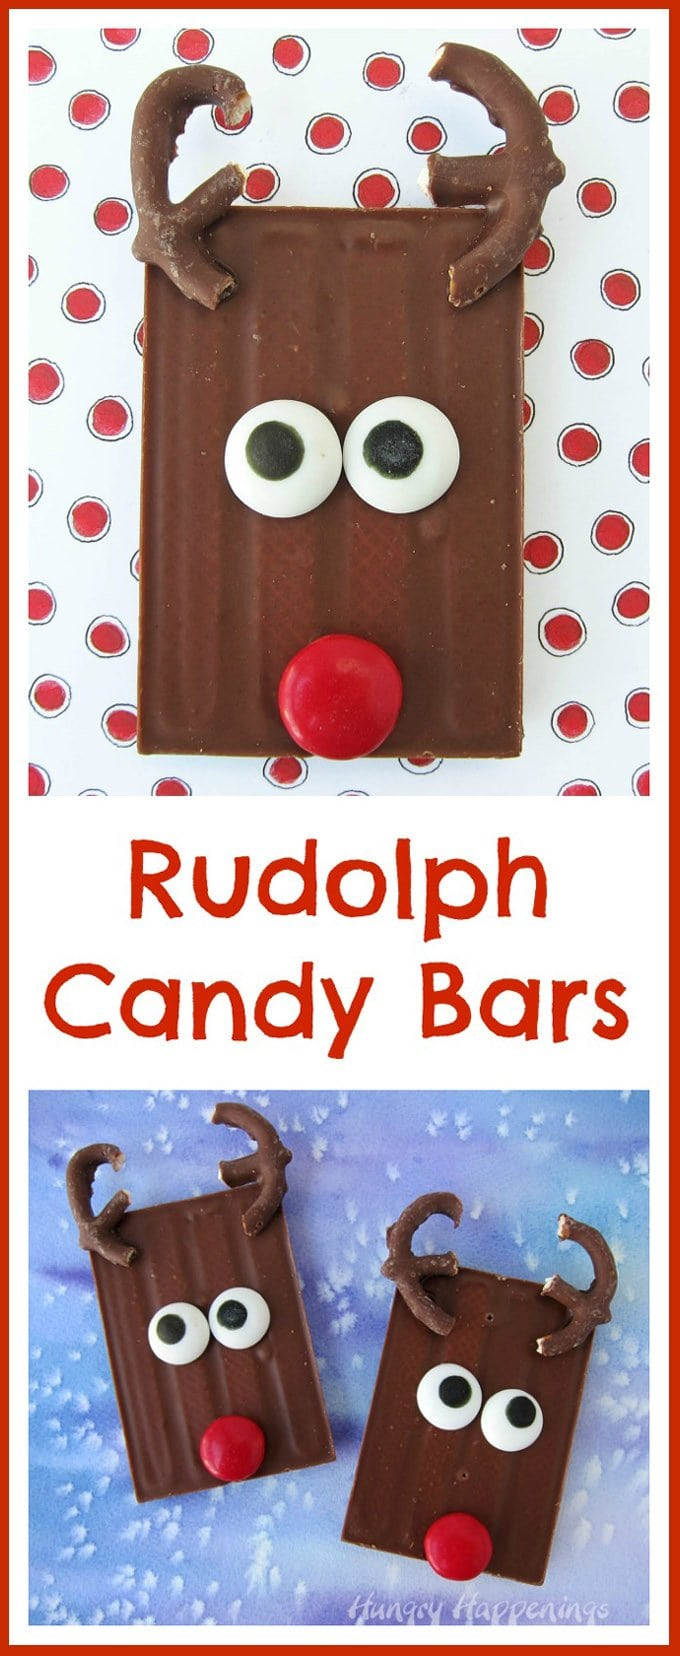 Turn store bought candy bars into Cute Christmas Treats in a snap. Just add two chocolate pretzel antlers, some candy eyes, and a shiny red nose and you have the sweetest Rudolph Candy Bars to give to friends and family this holiday season.